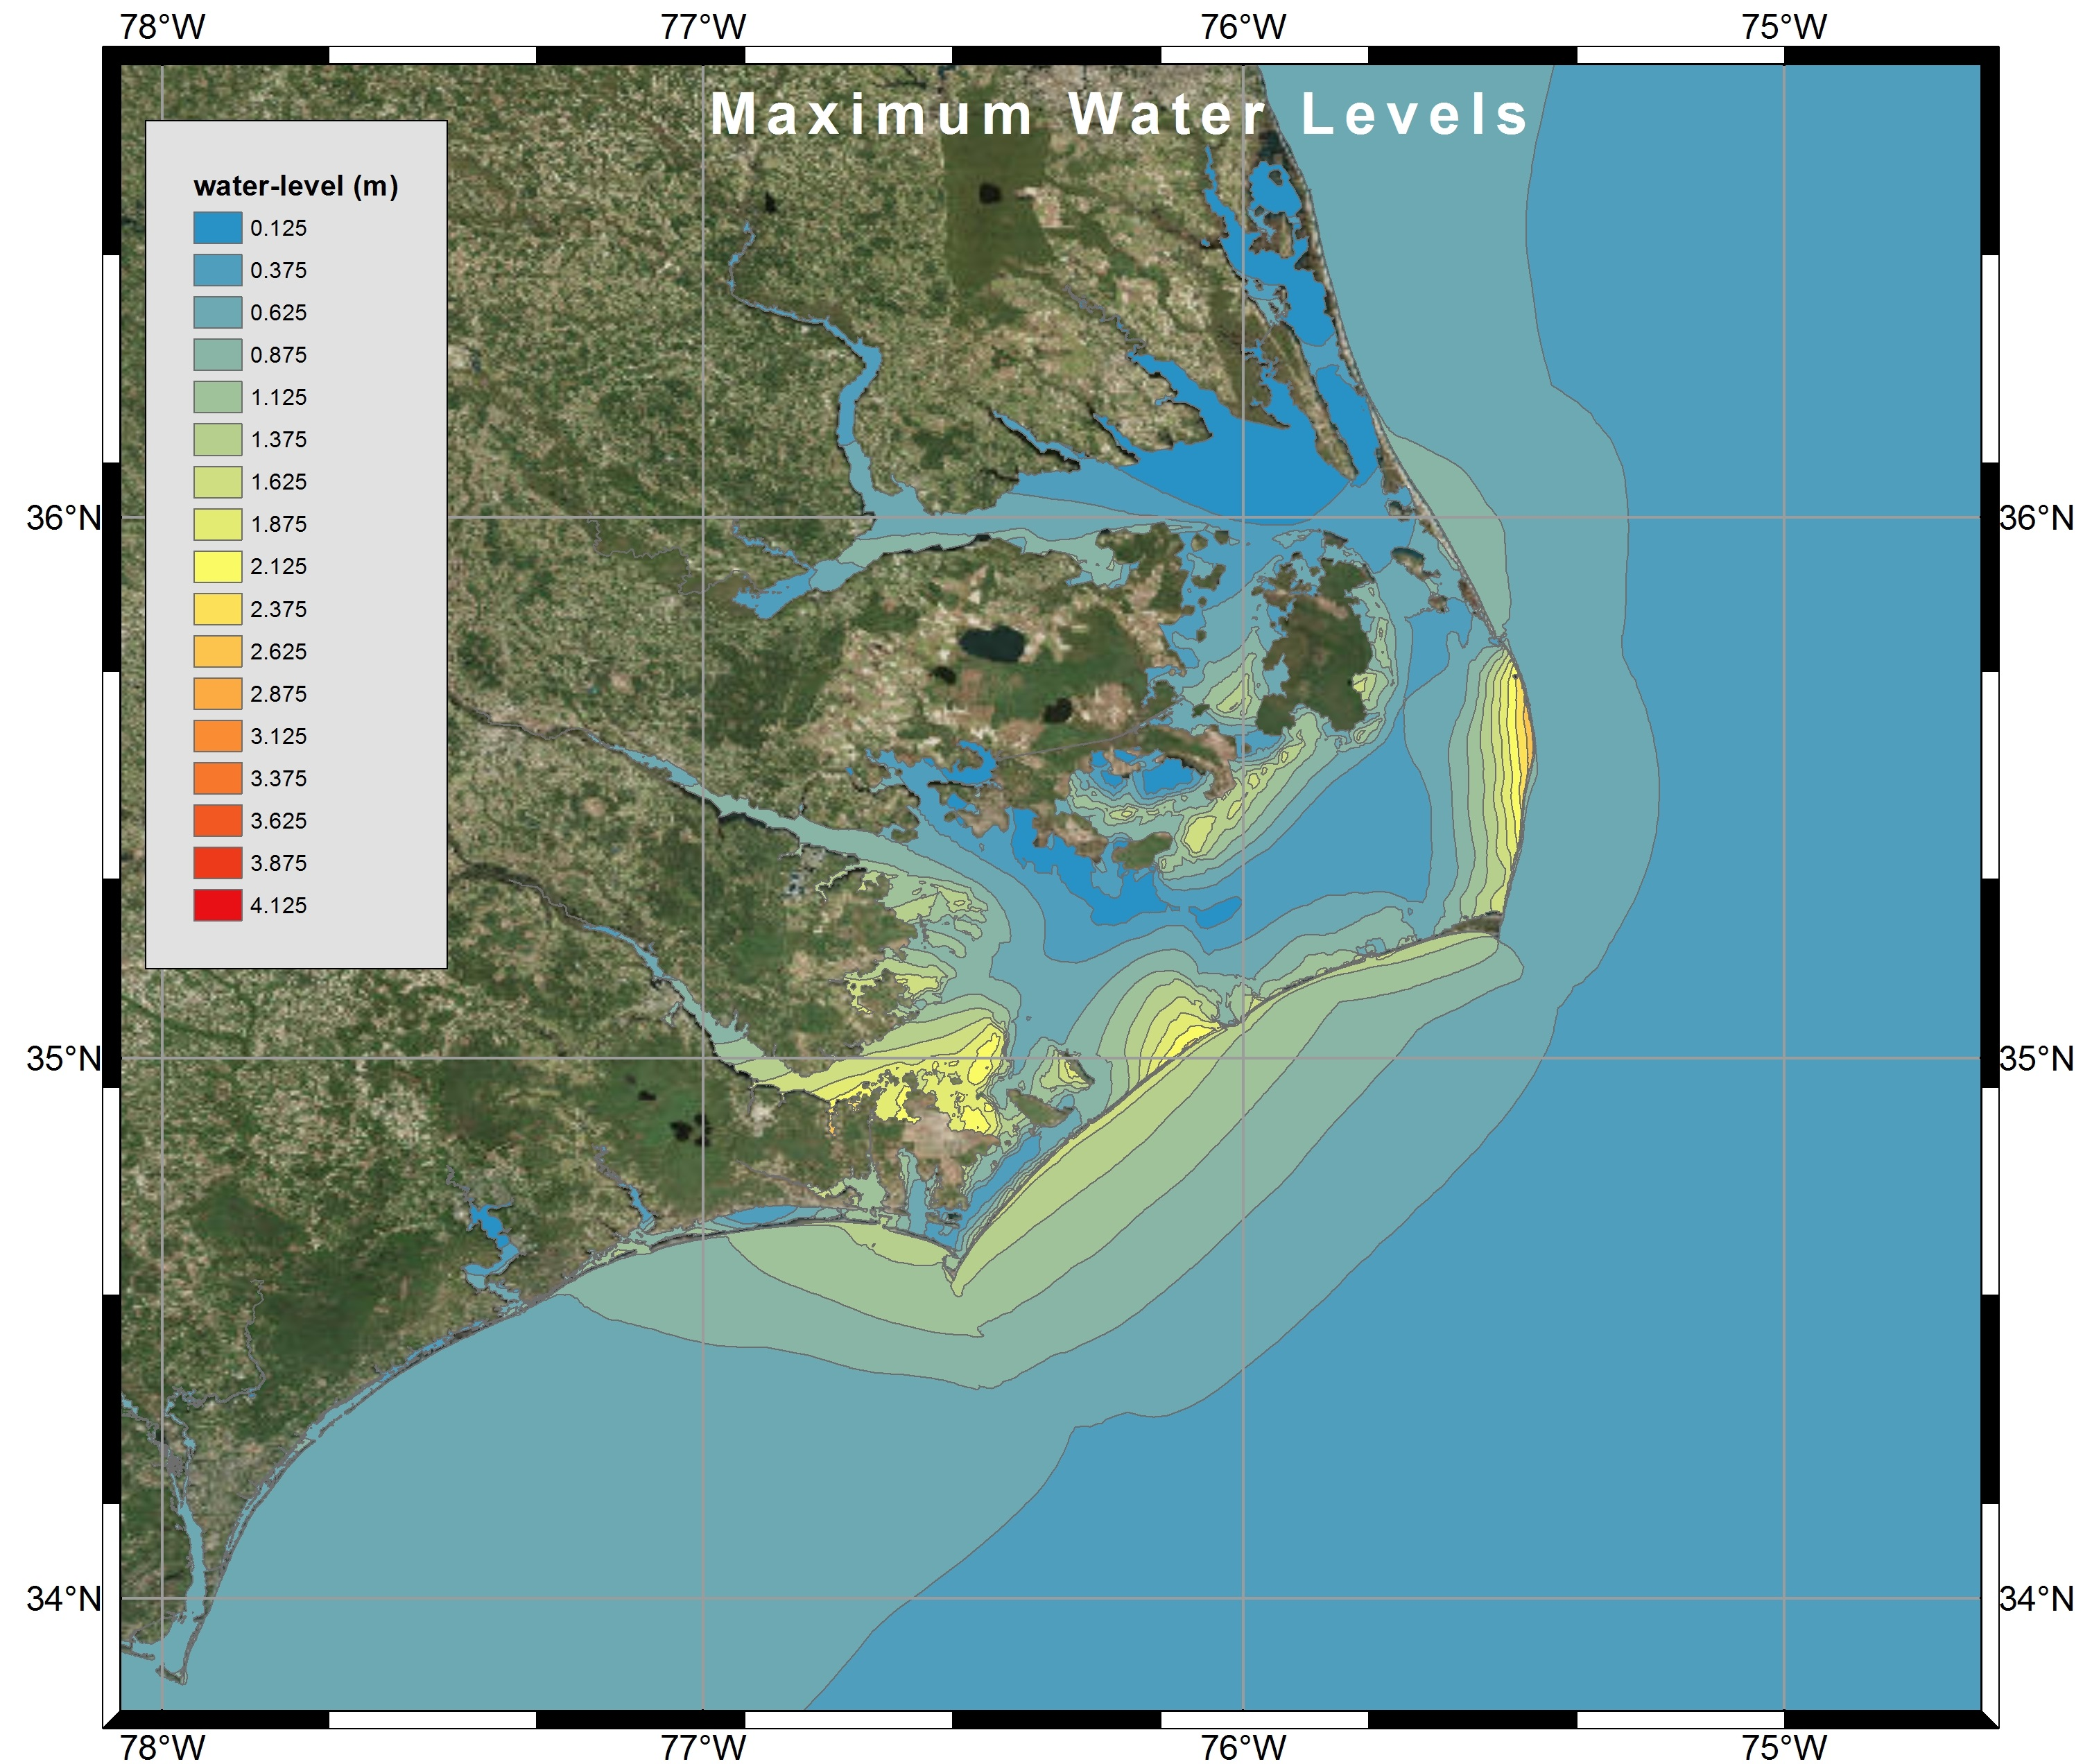 Visualization of Maximum Water Levels along the North Carolina coast during Hurricane Arthur (2014) using polygon shapefiles created by Kalpana with ArcGIS satellite imagery.